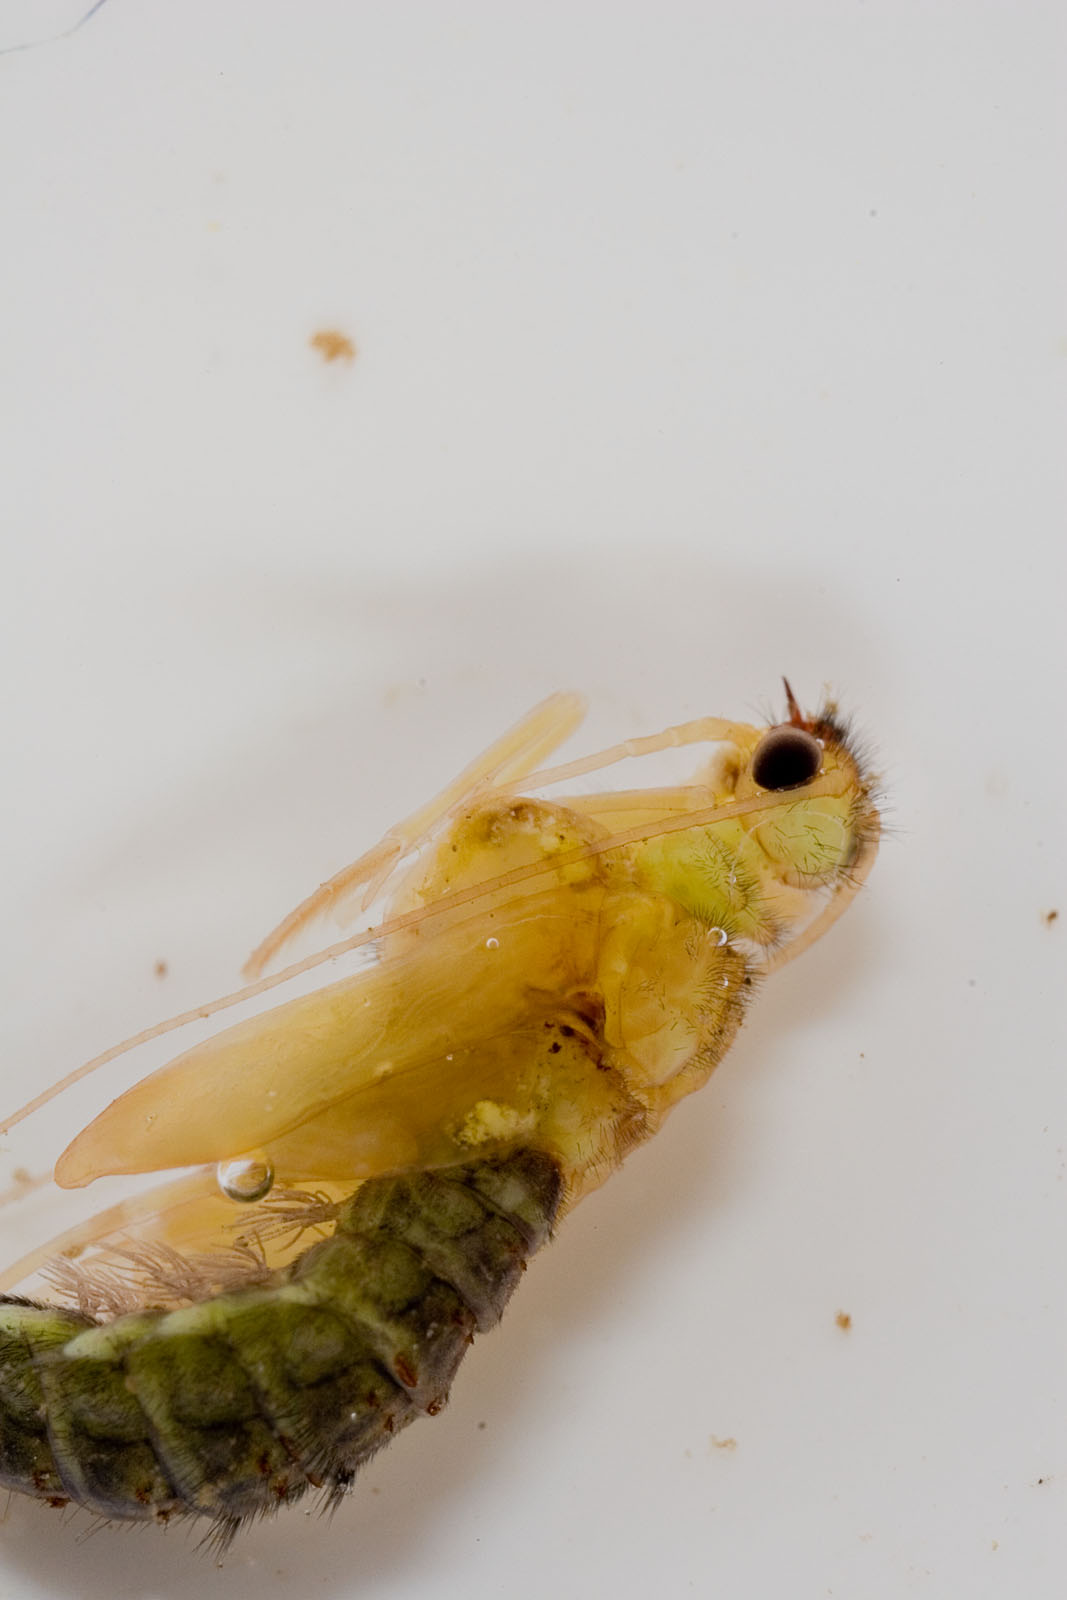 Hydropsyche (Spotted Sedges) Caddisfly Pupa from the Delaware River in New York